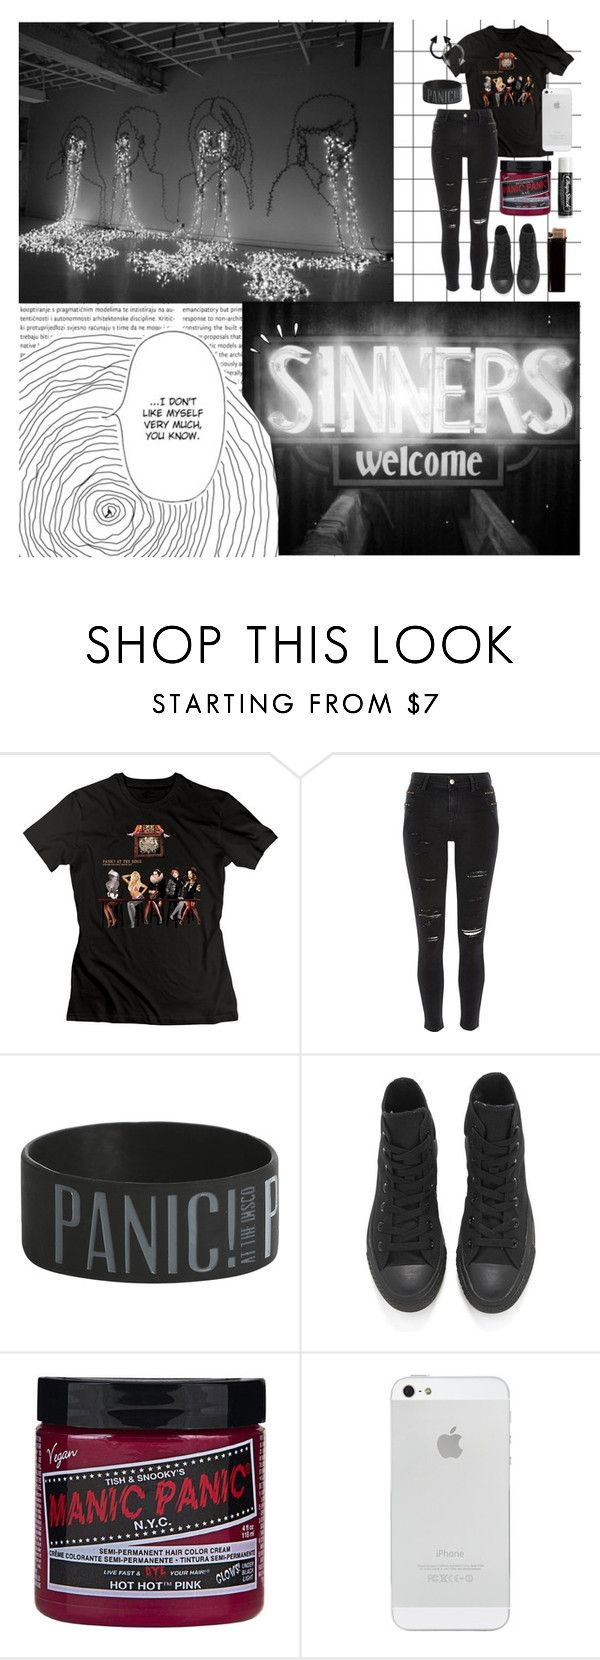 """""""//this was no accident//"""" by abigialtheturtle ❤ liked on Polyvore featuring River Island, Converse, Manic Panic NYC, Old Navy, Chapstick and panicatthedisco"""